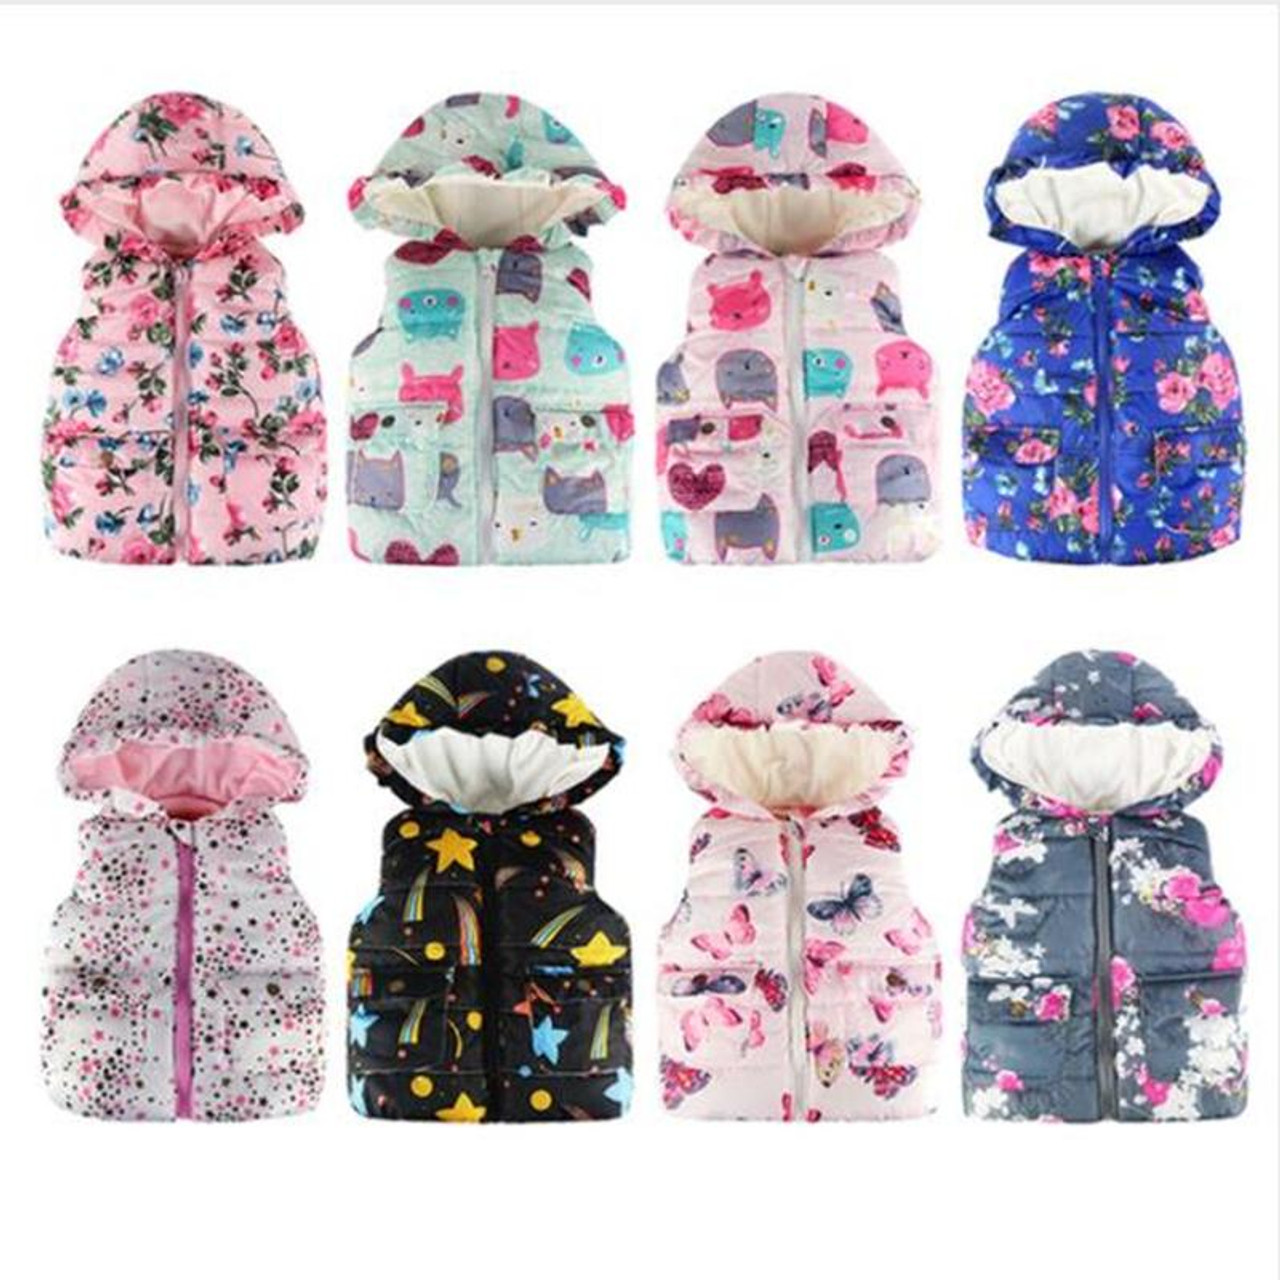 Toddler Baby Girl Boys Cute Little Girls Vests Outerwear with Hood Sleeveless Floral Flowers Hooded Warm Waistcoat Tops